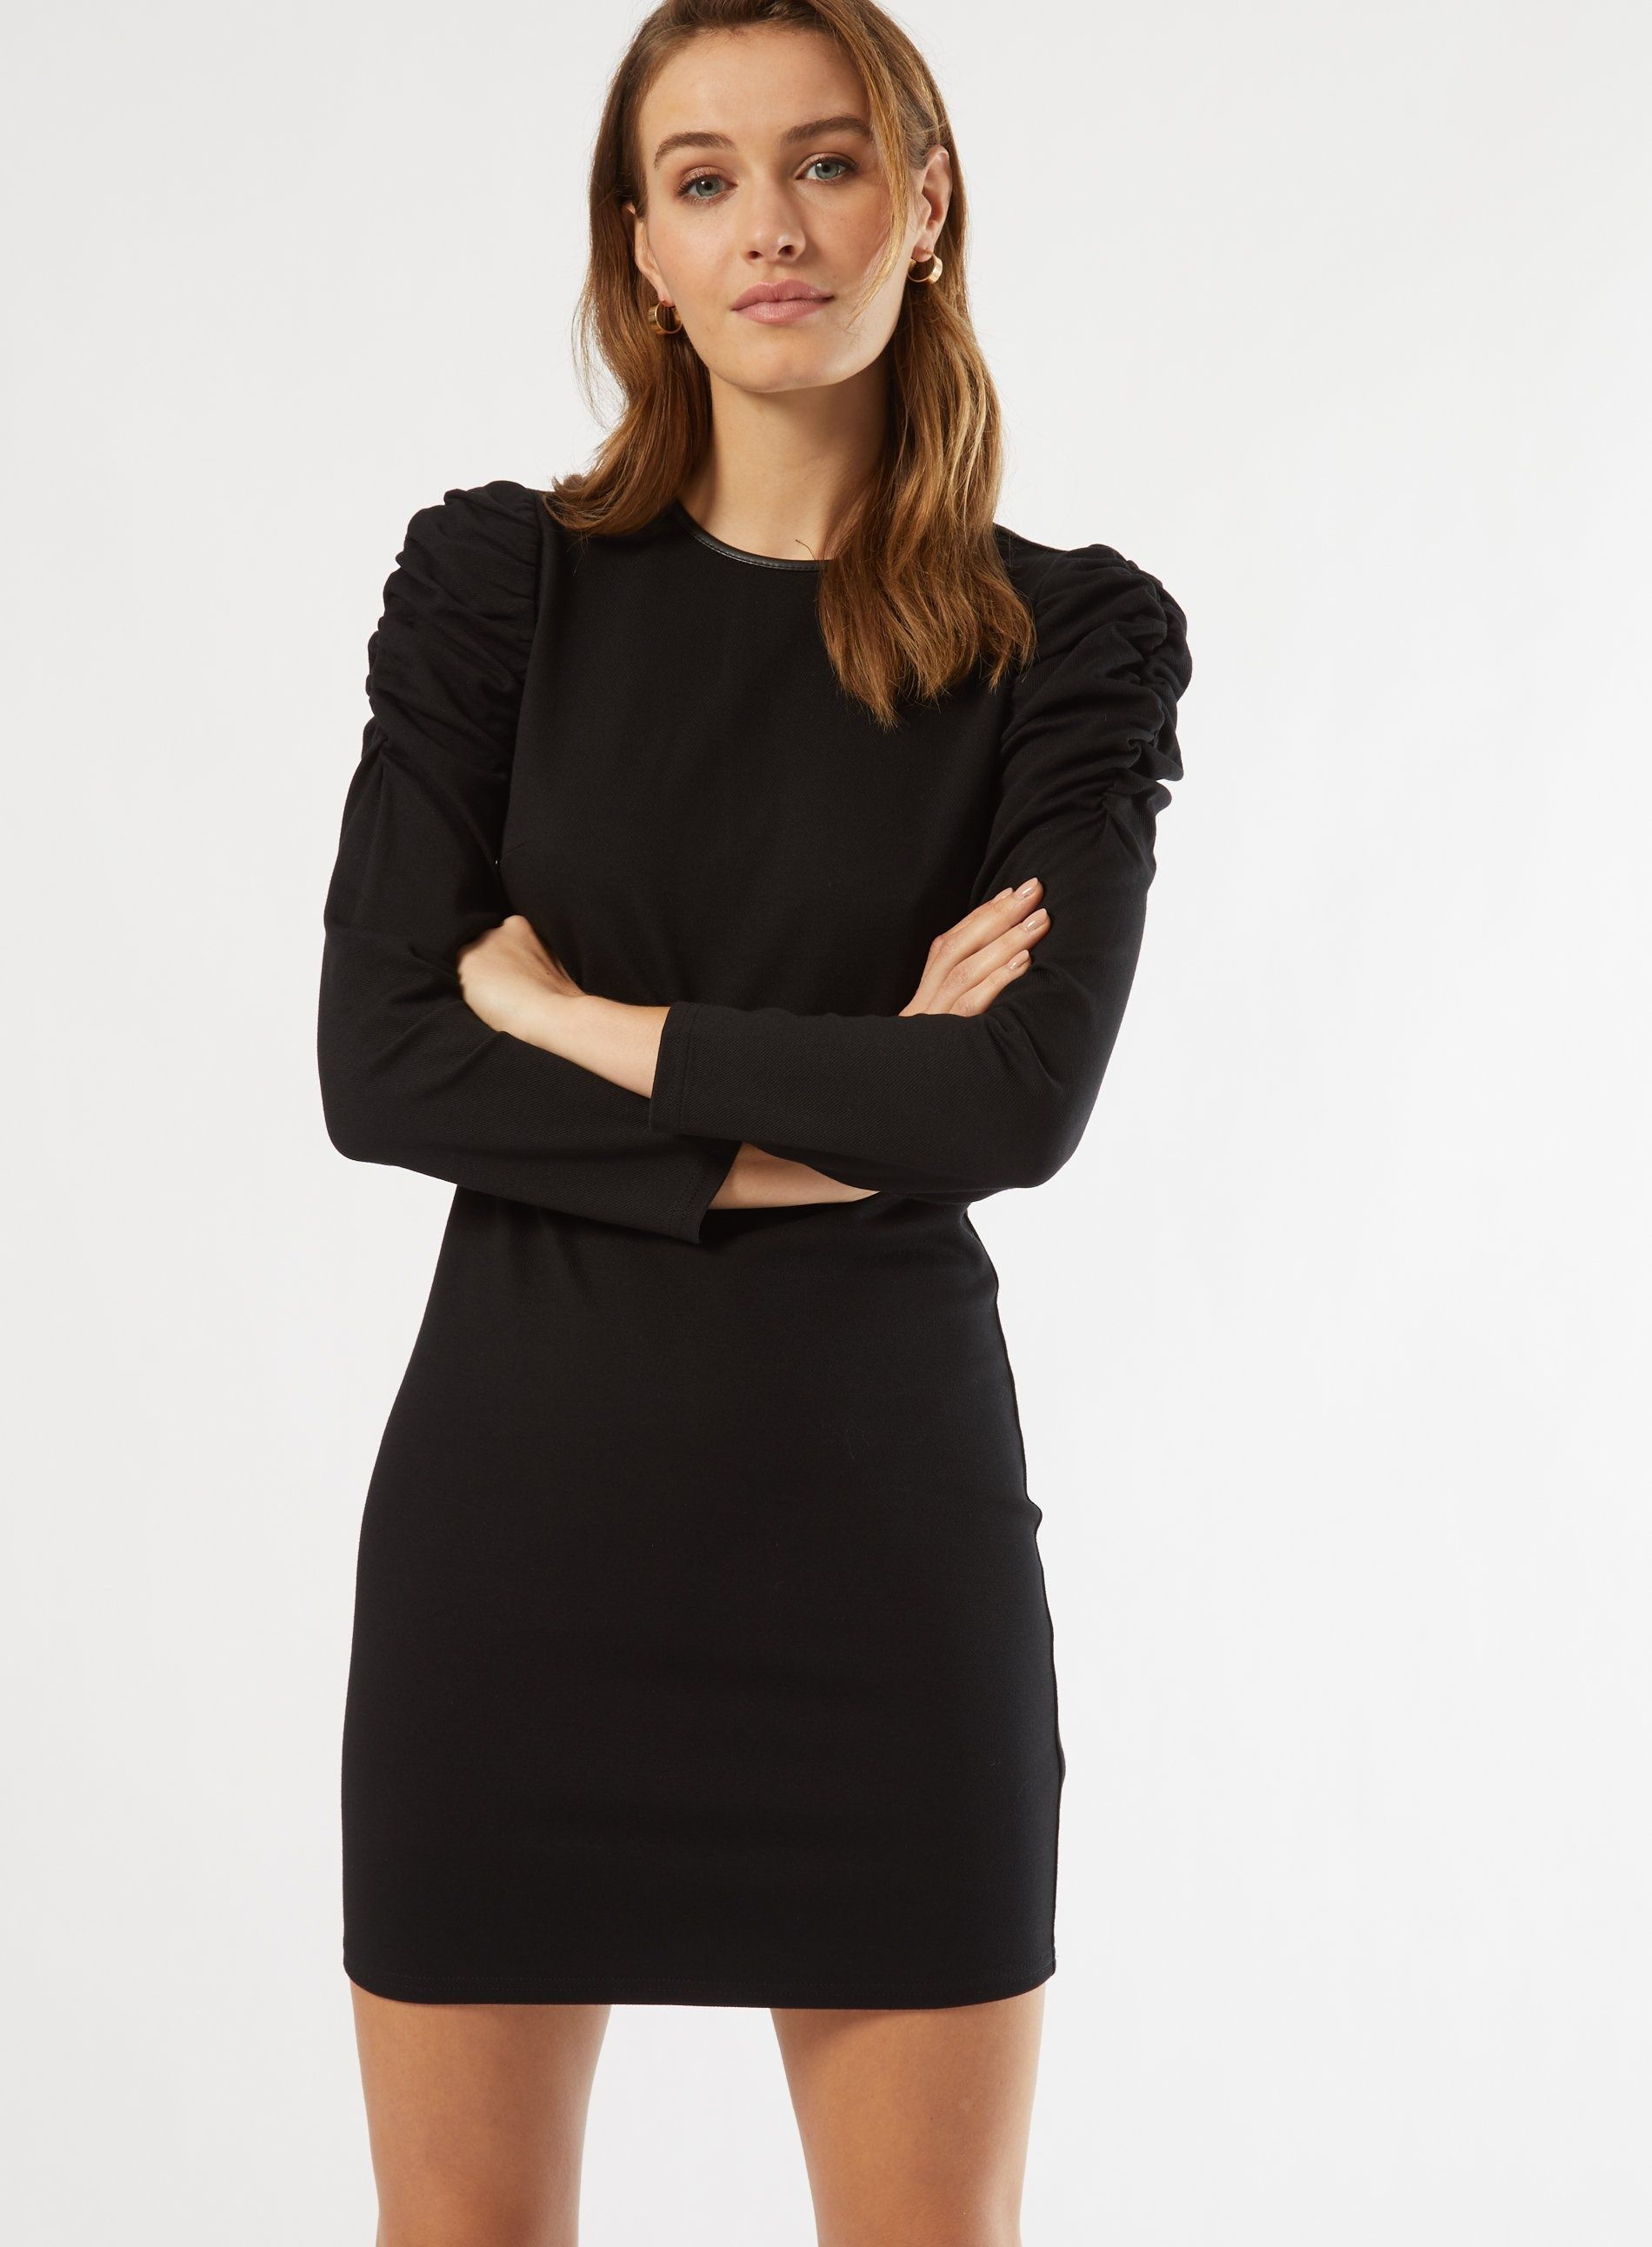 Dorothy Perkins Womens Black Ruched Sleeve Shift Dress Round Neck Loose Fit